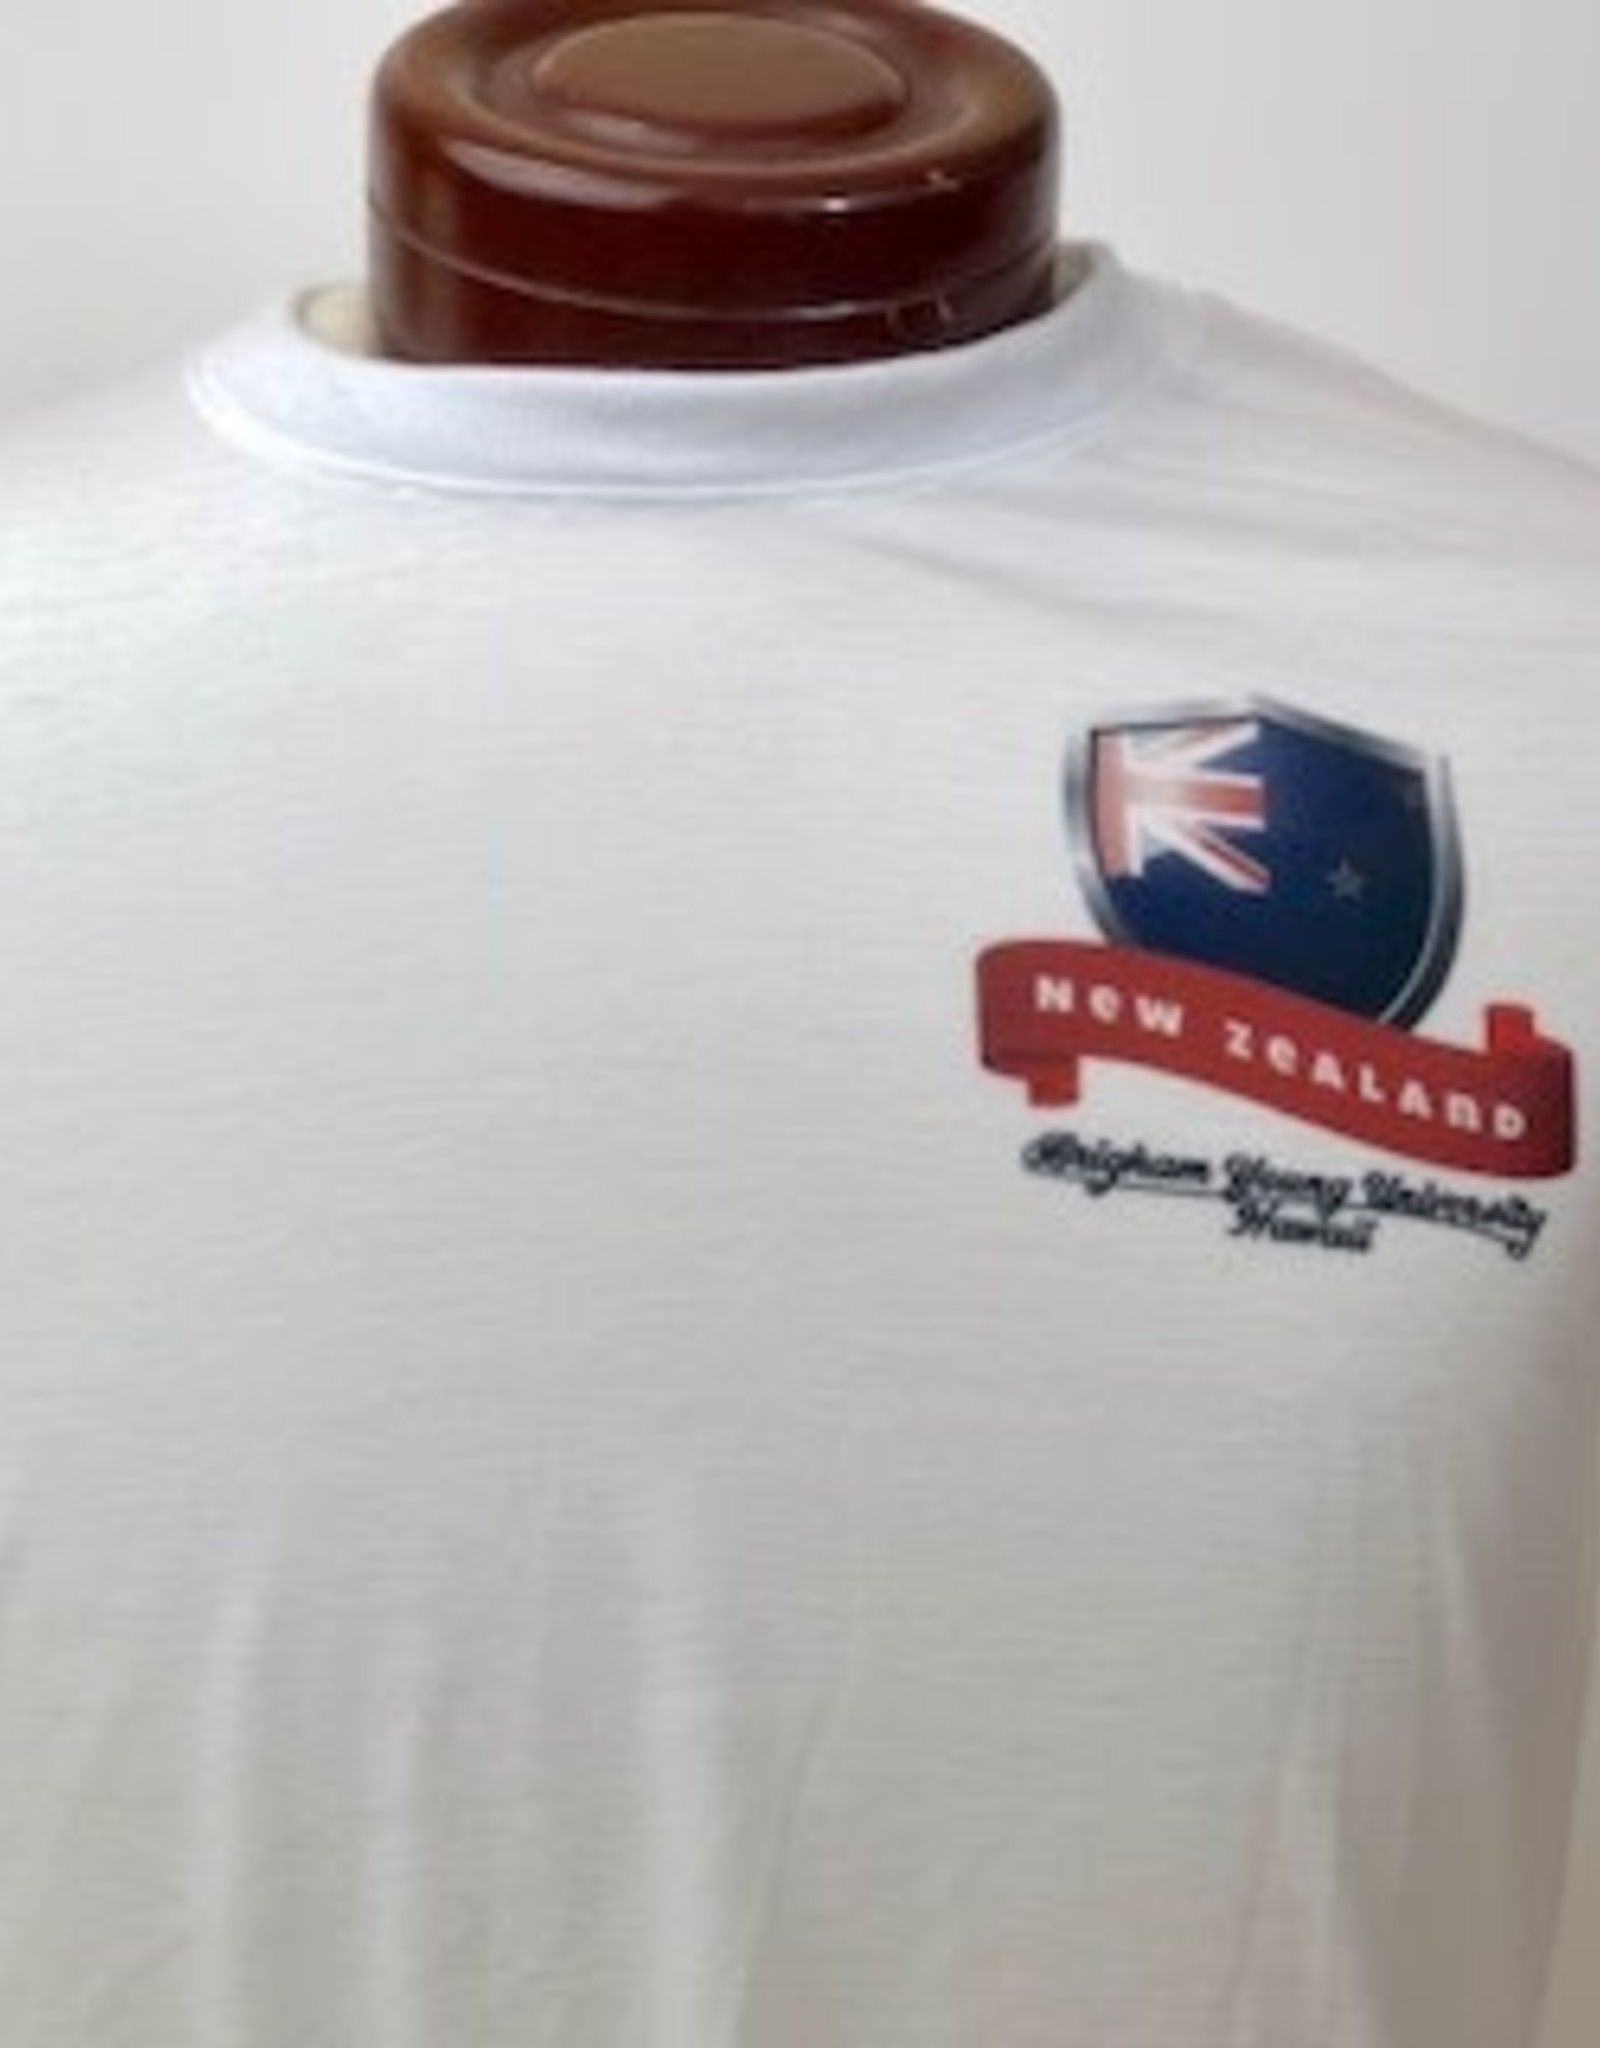 BYUH PRINT SERVICES Clearance - White Flag Shirt